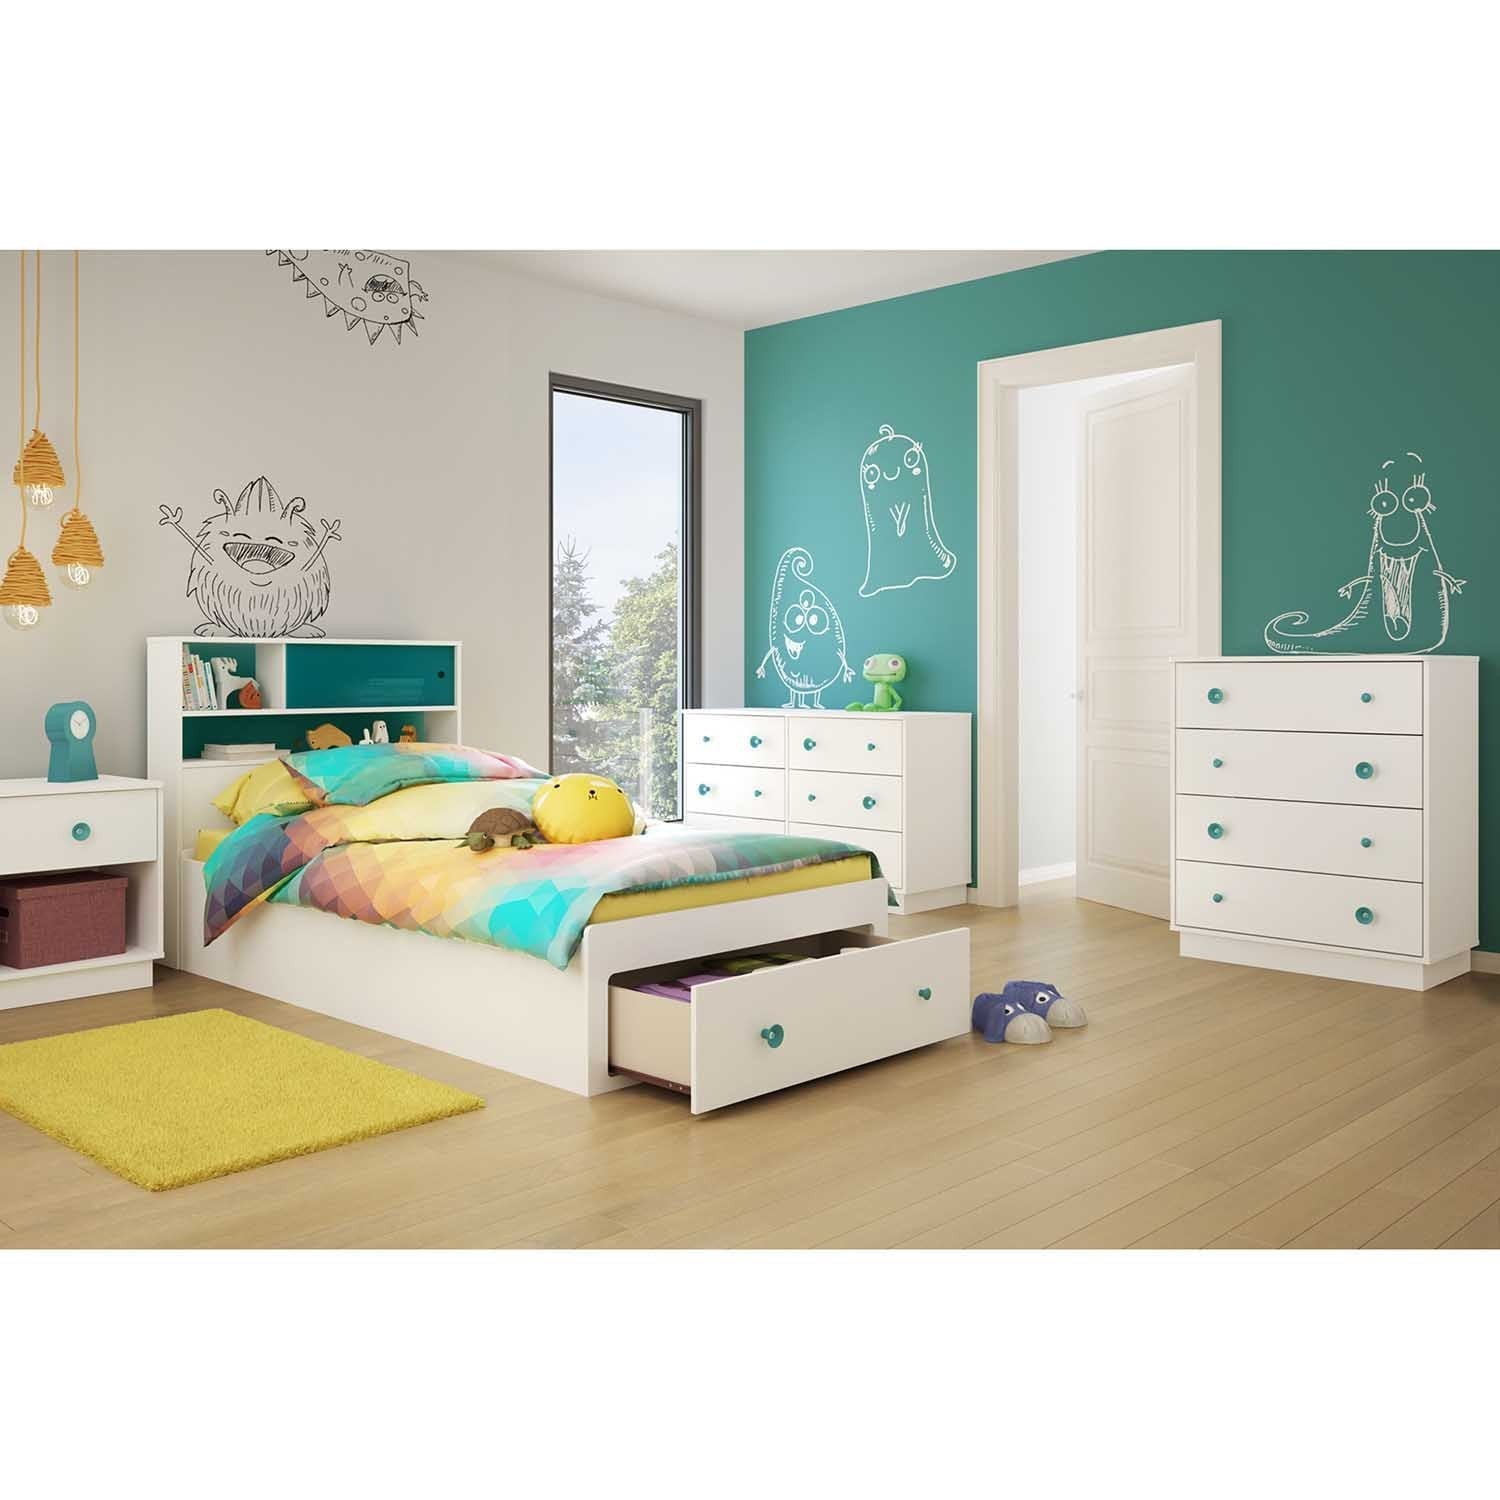 South Shore Little Monsters Twin Mates Bed (Pure White)